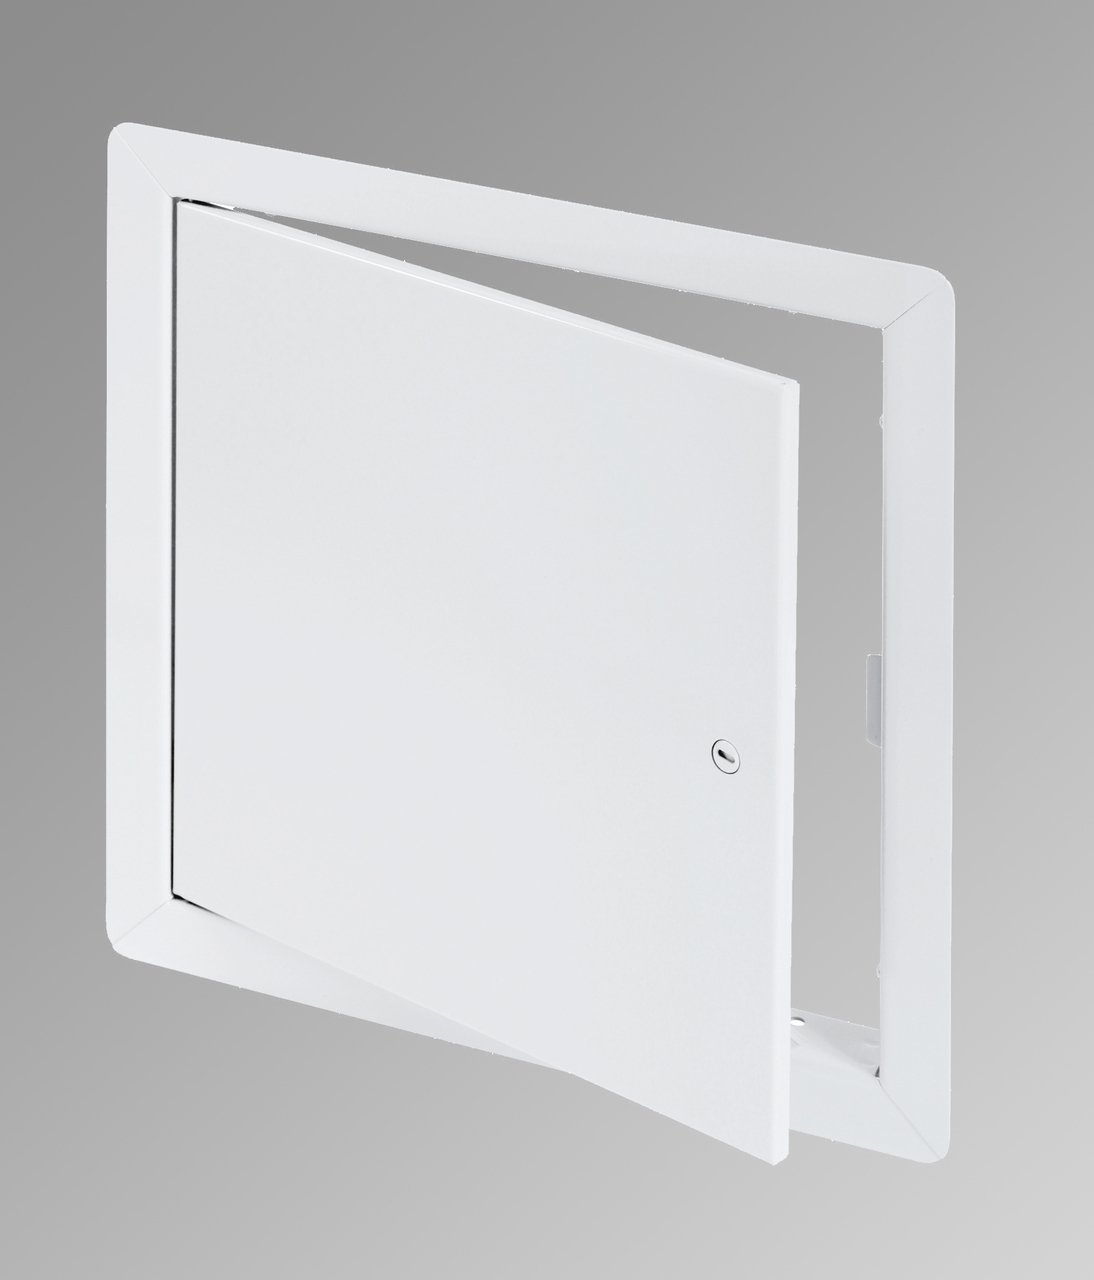 12'' x 16'' General Purpose Access Door with Flange - Cendrex by Cendrex